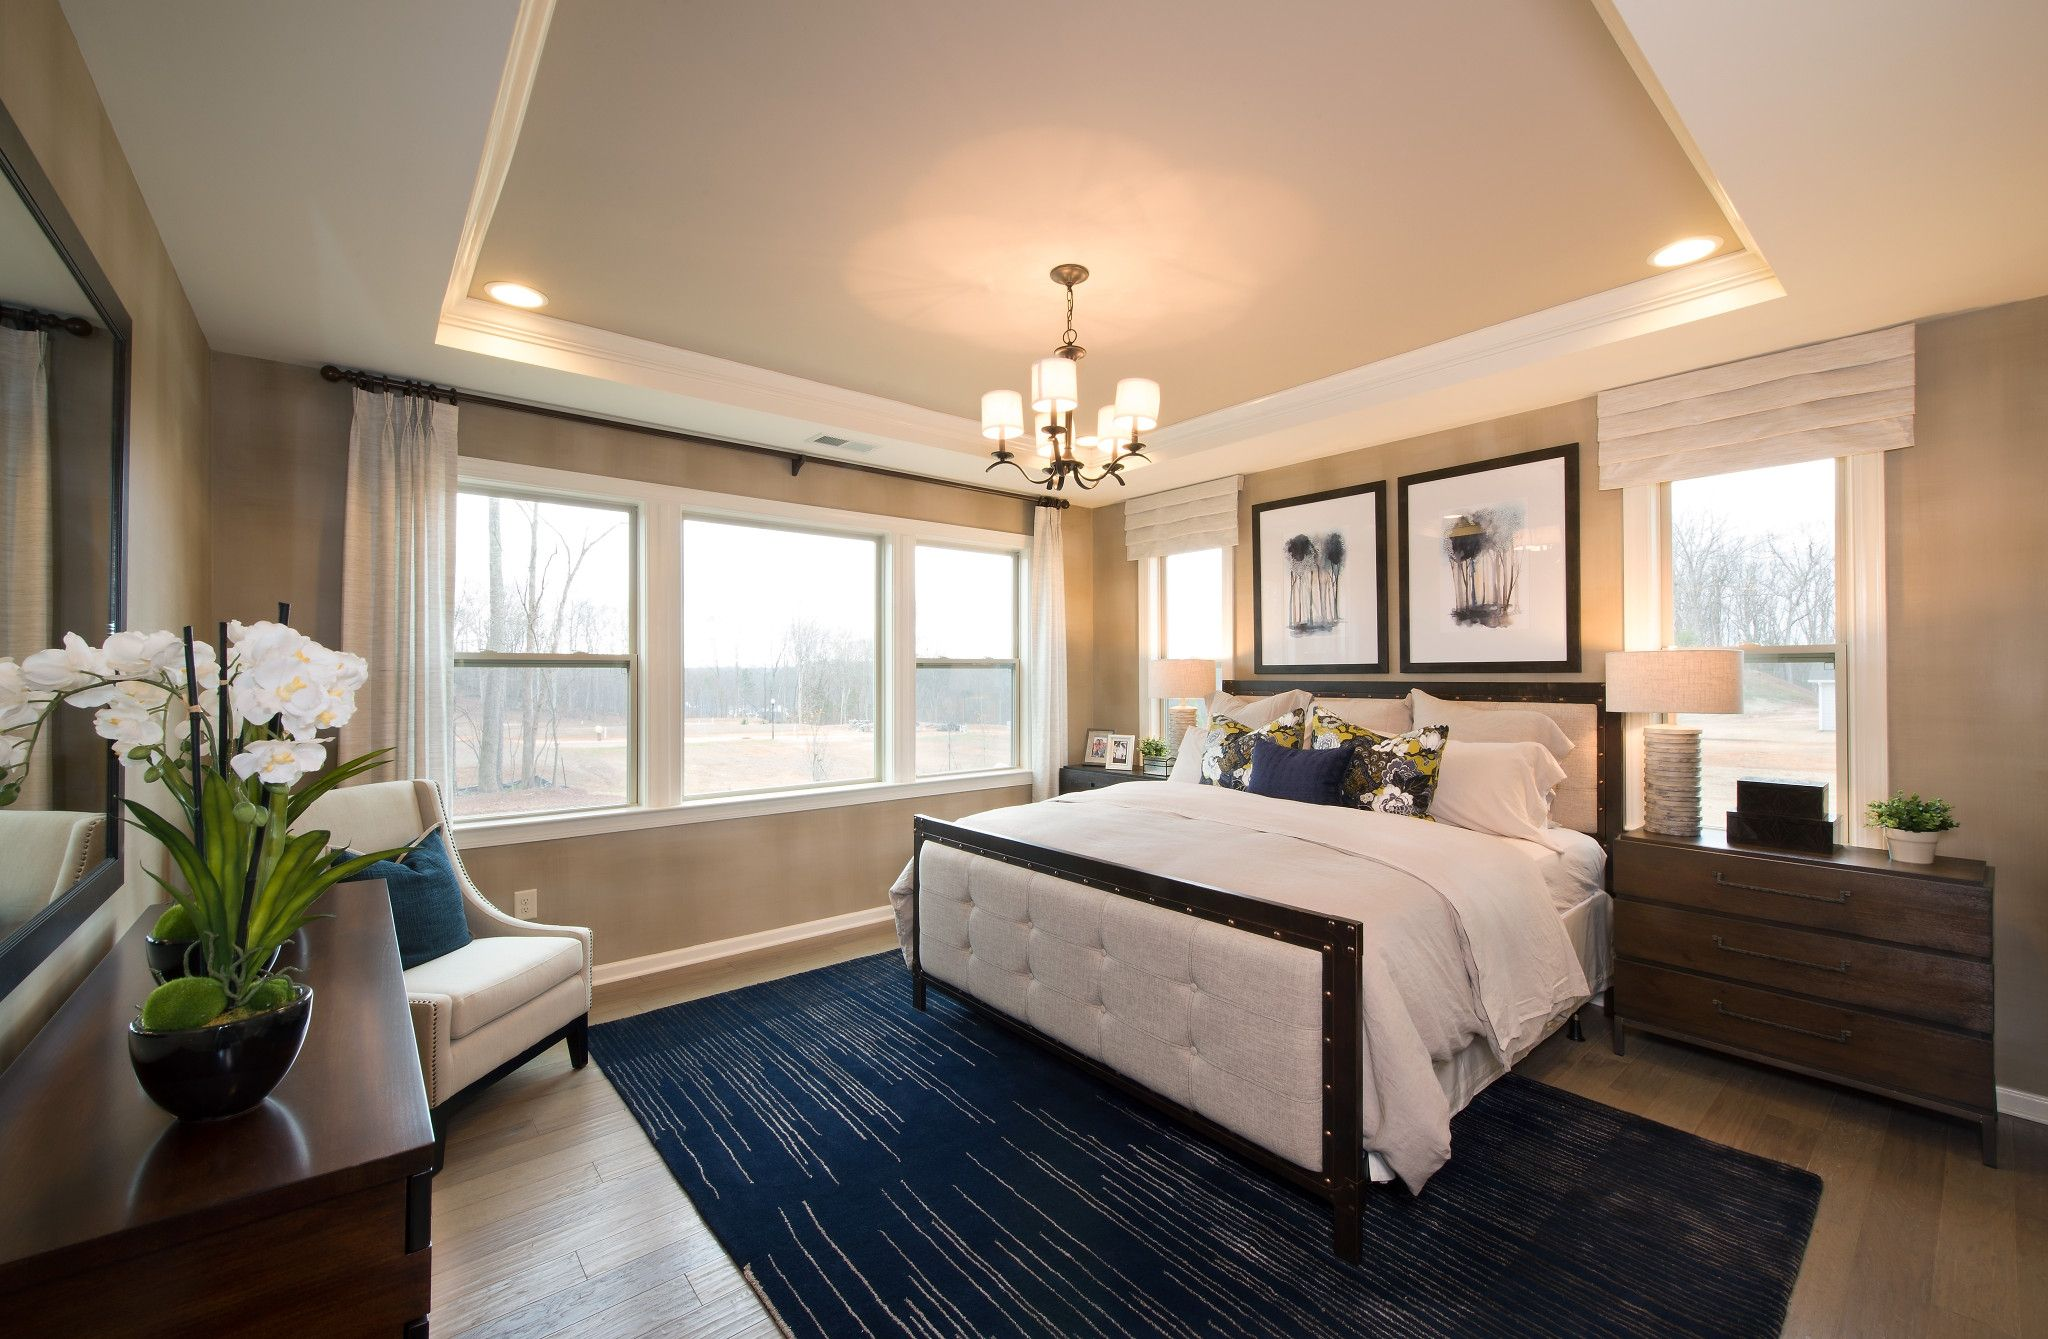 Bedroom featured in the Everett By Shea Homes in Charlotte, NC